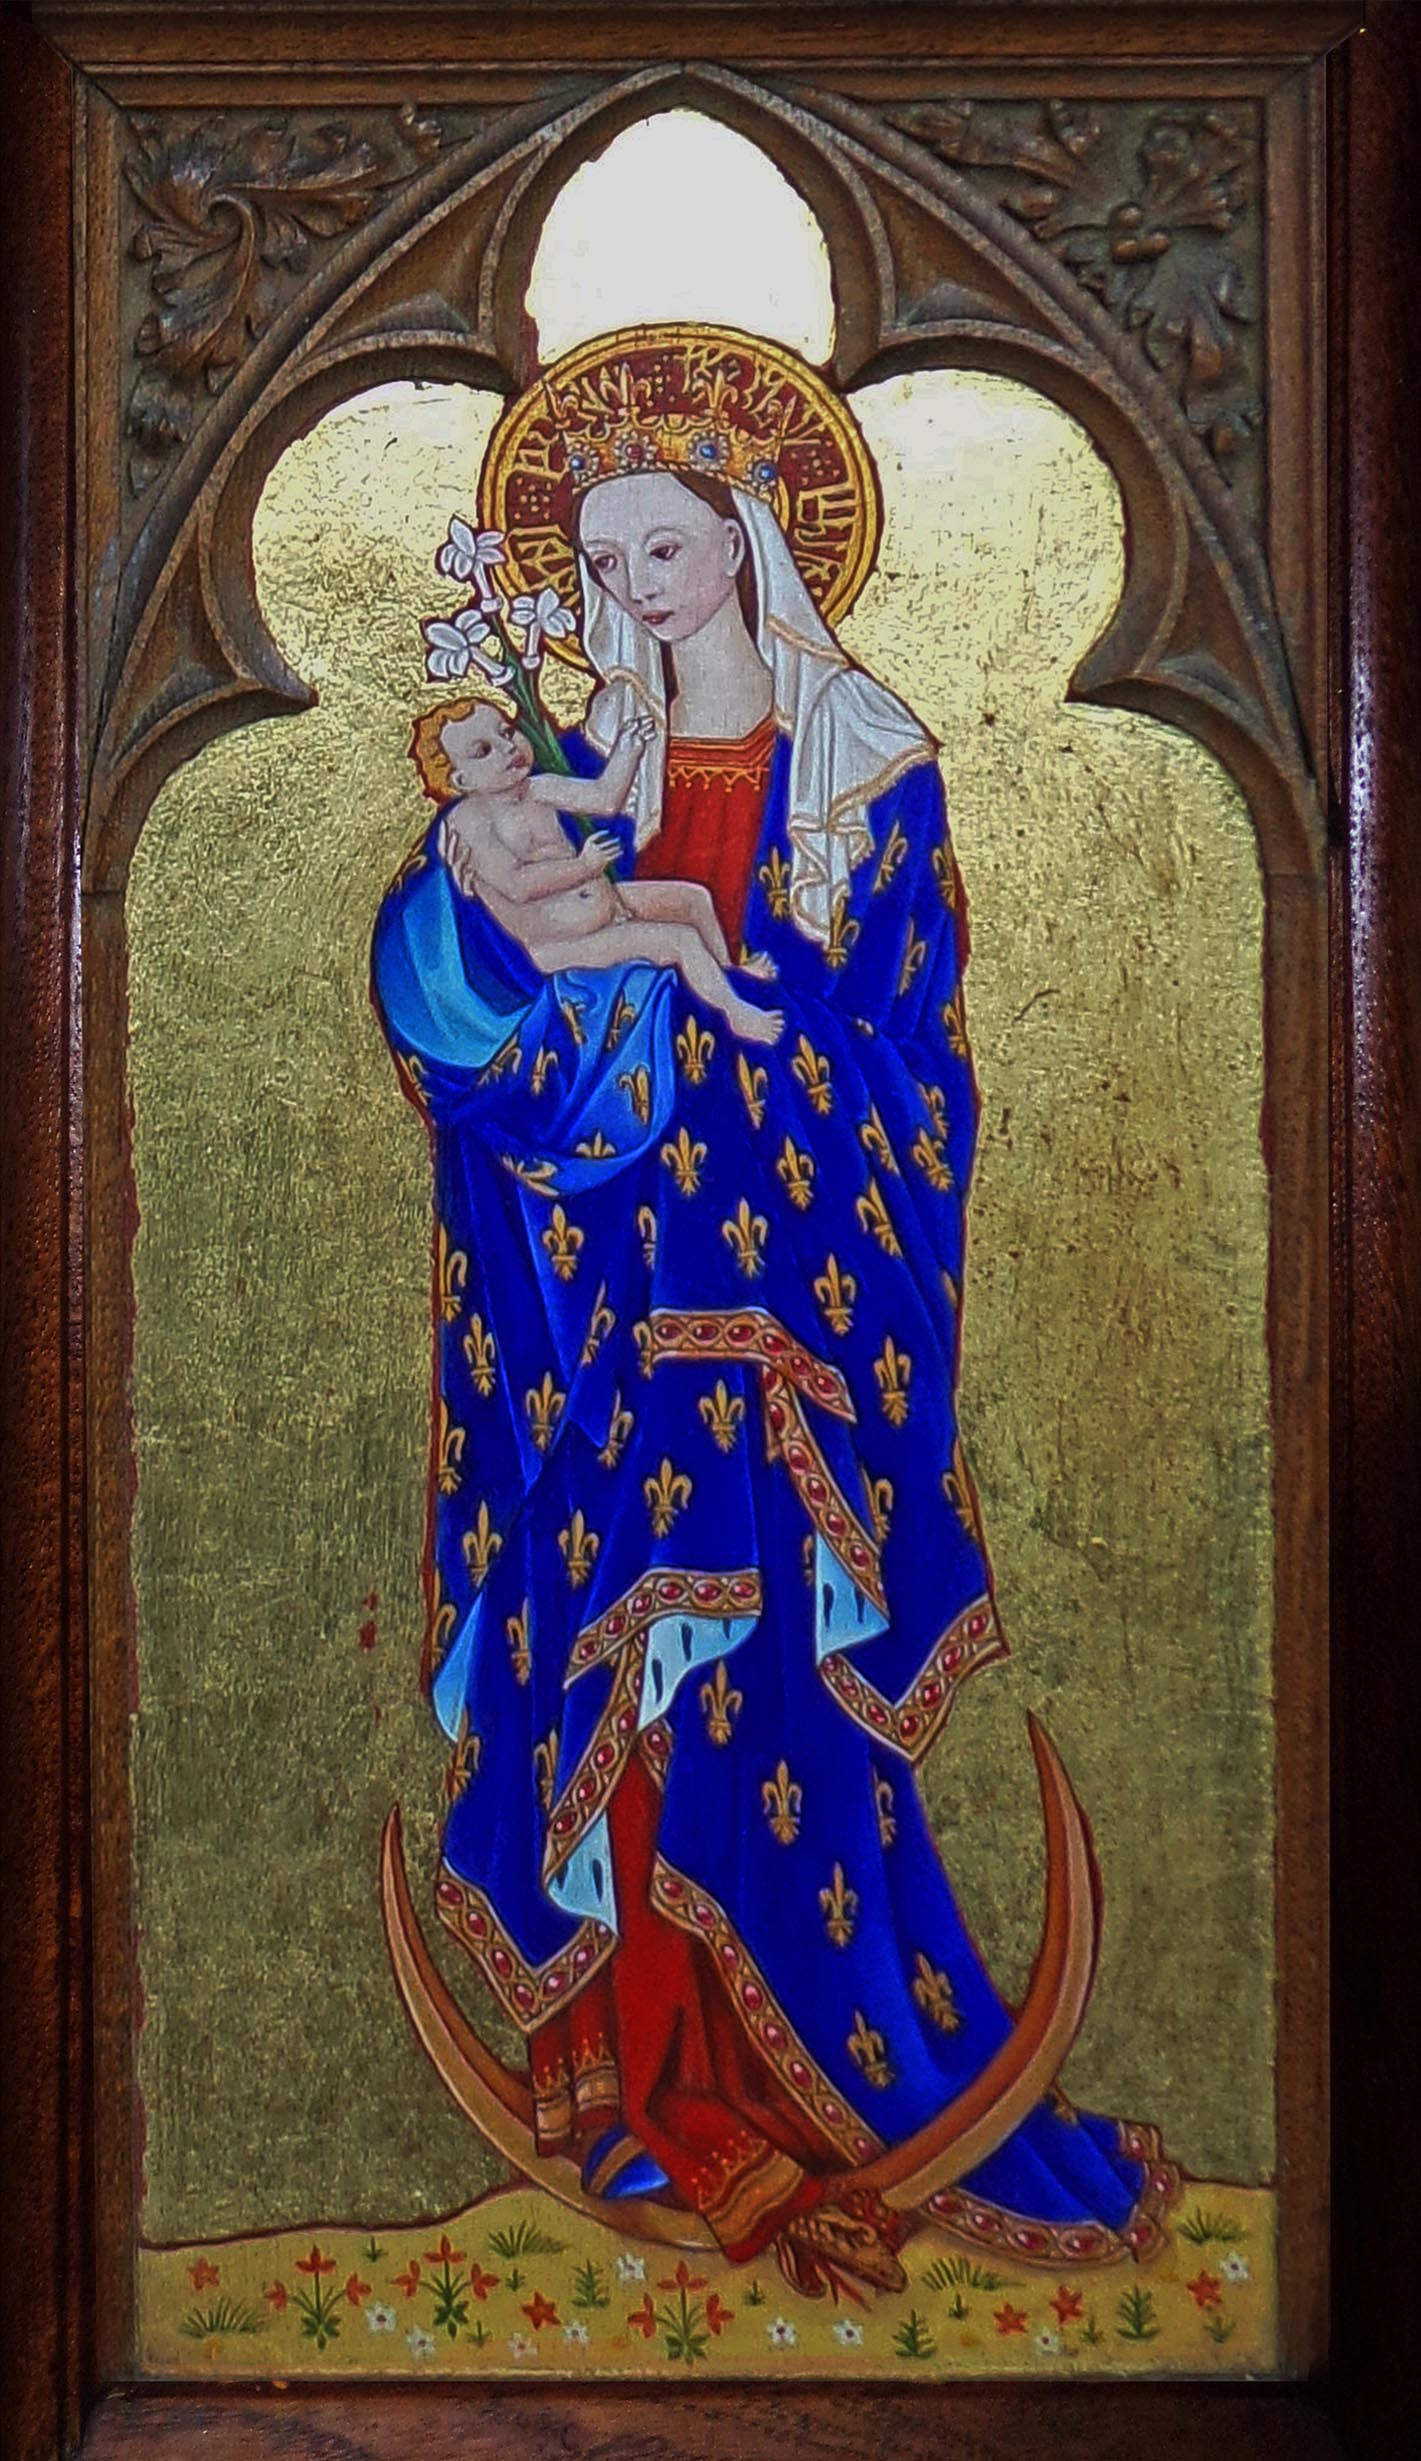 Blessed Virgin Mary - 2015